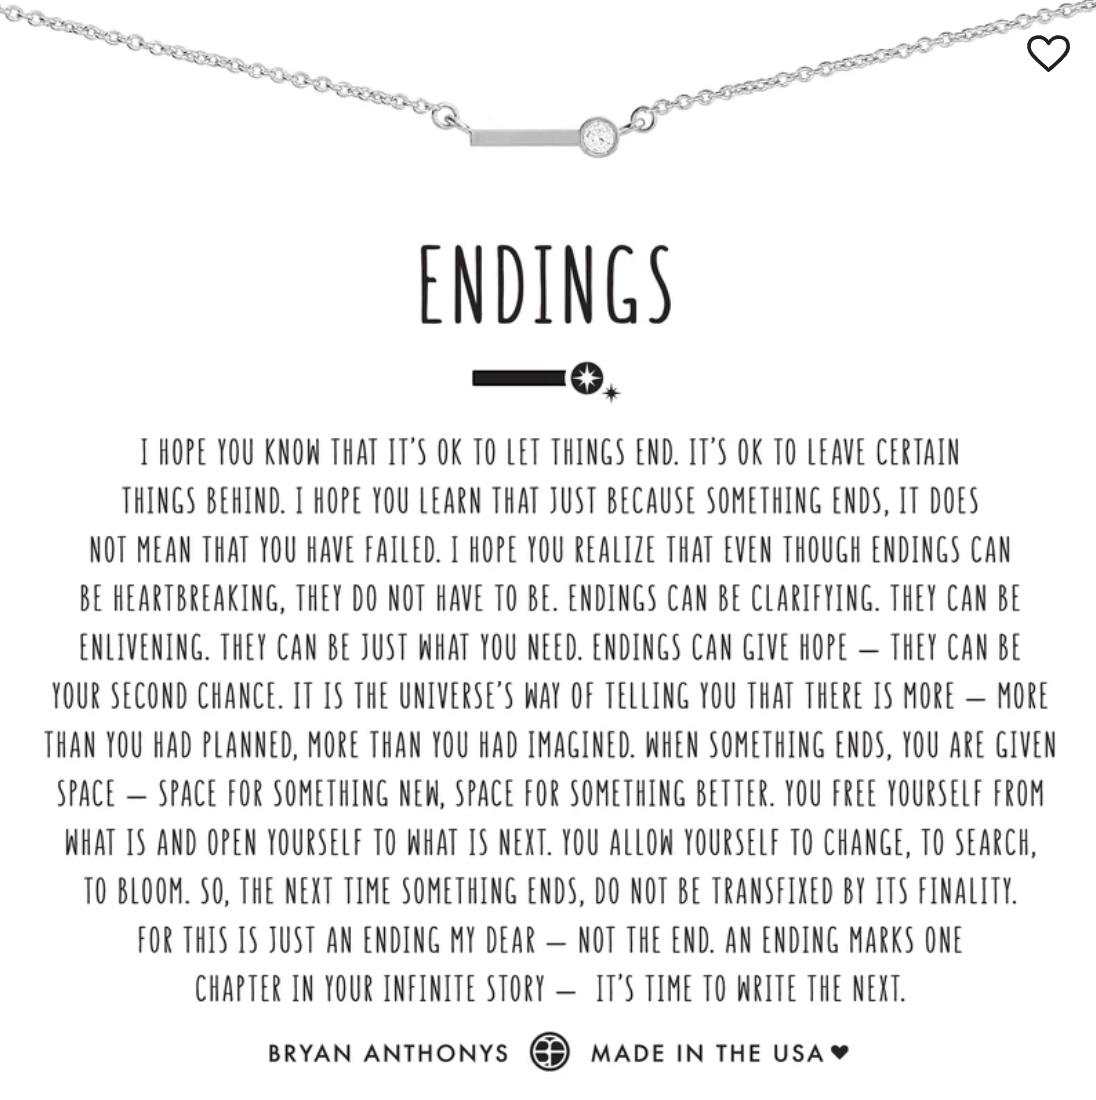 Bryan Anthony's Endings Necklace